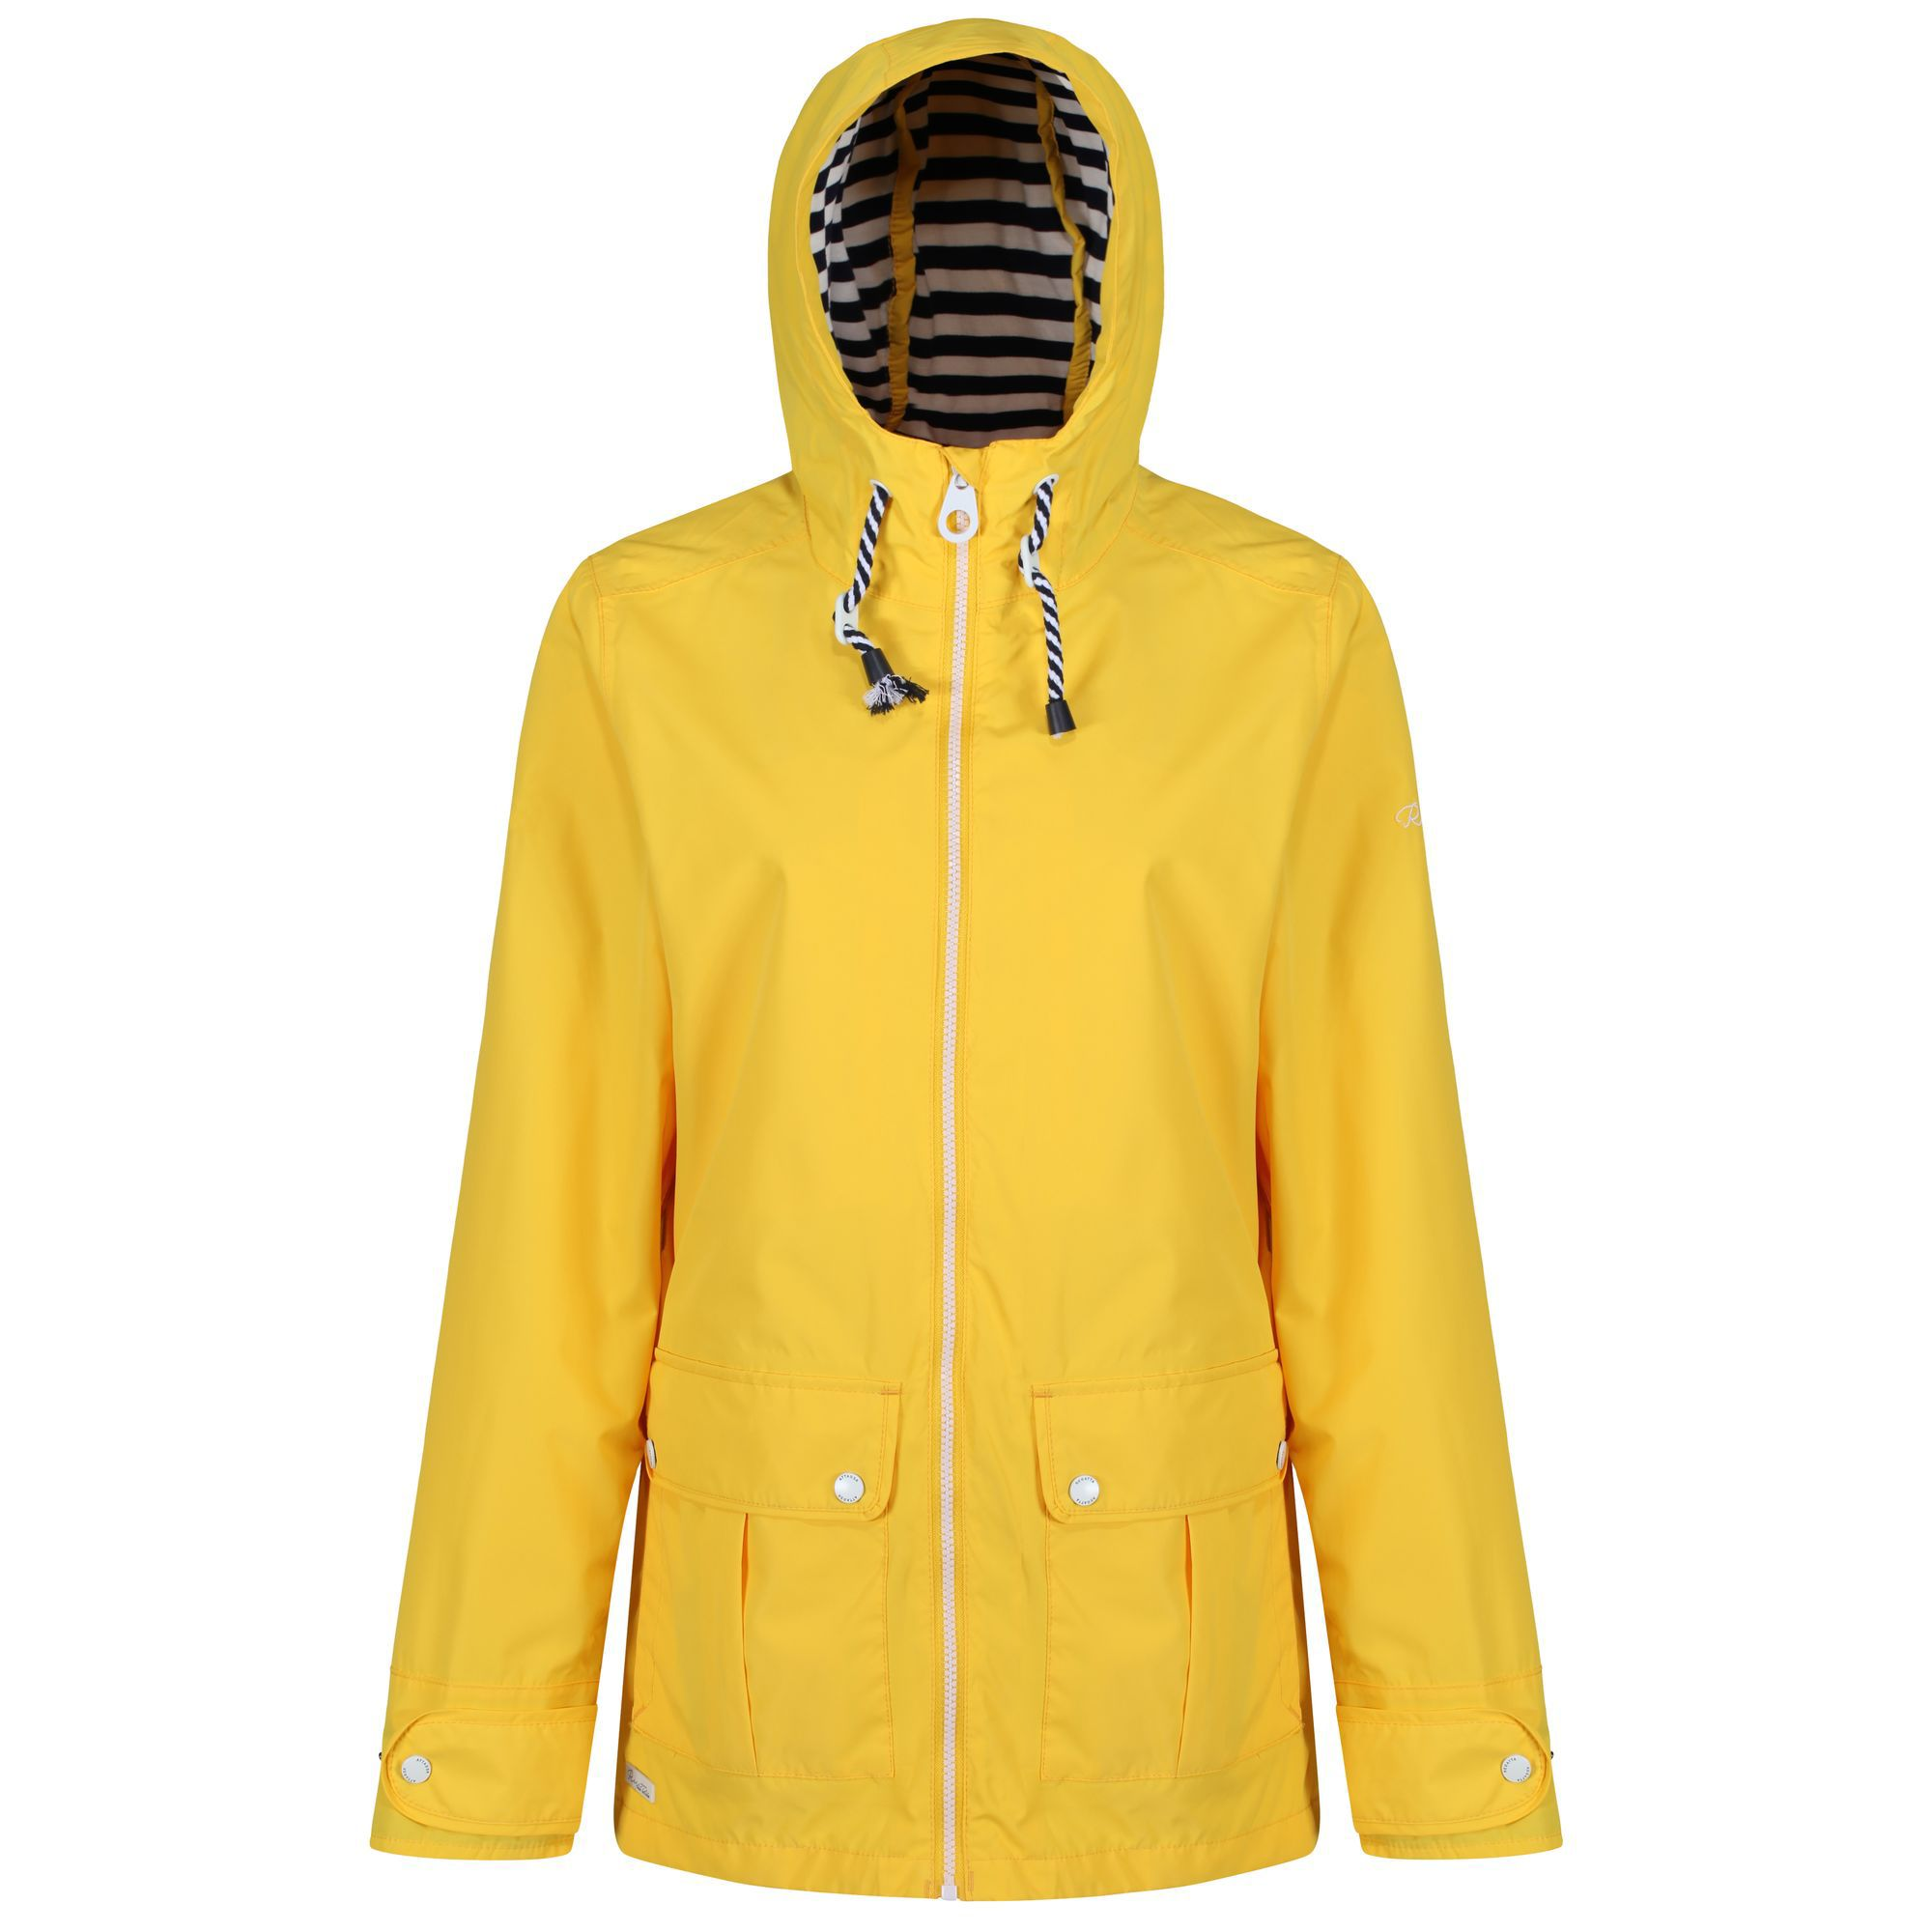 Regatta Bayeur Waterproof Jacket, Yellow